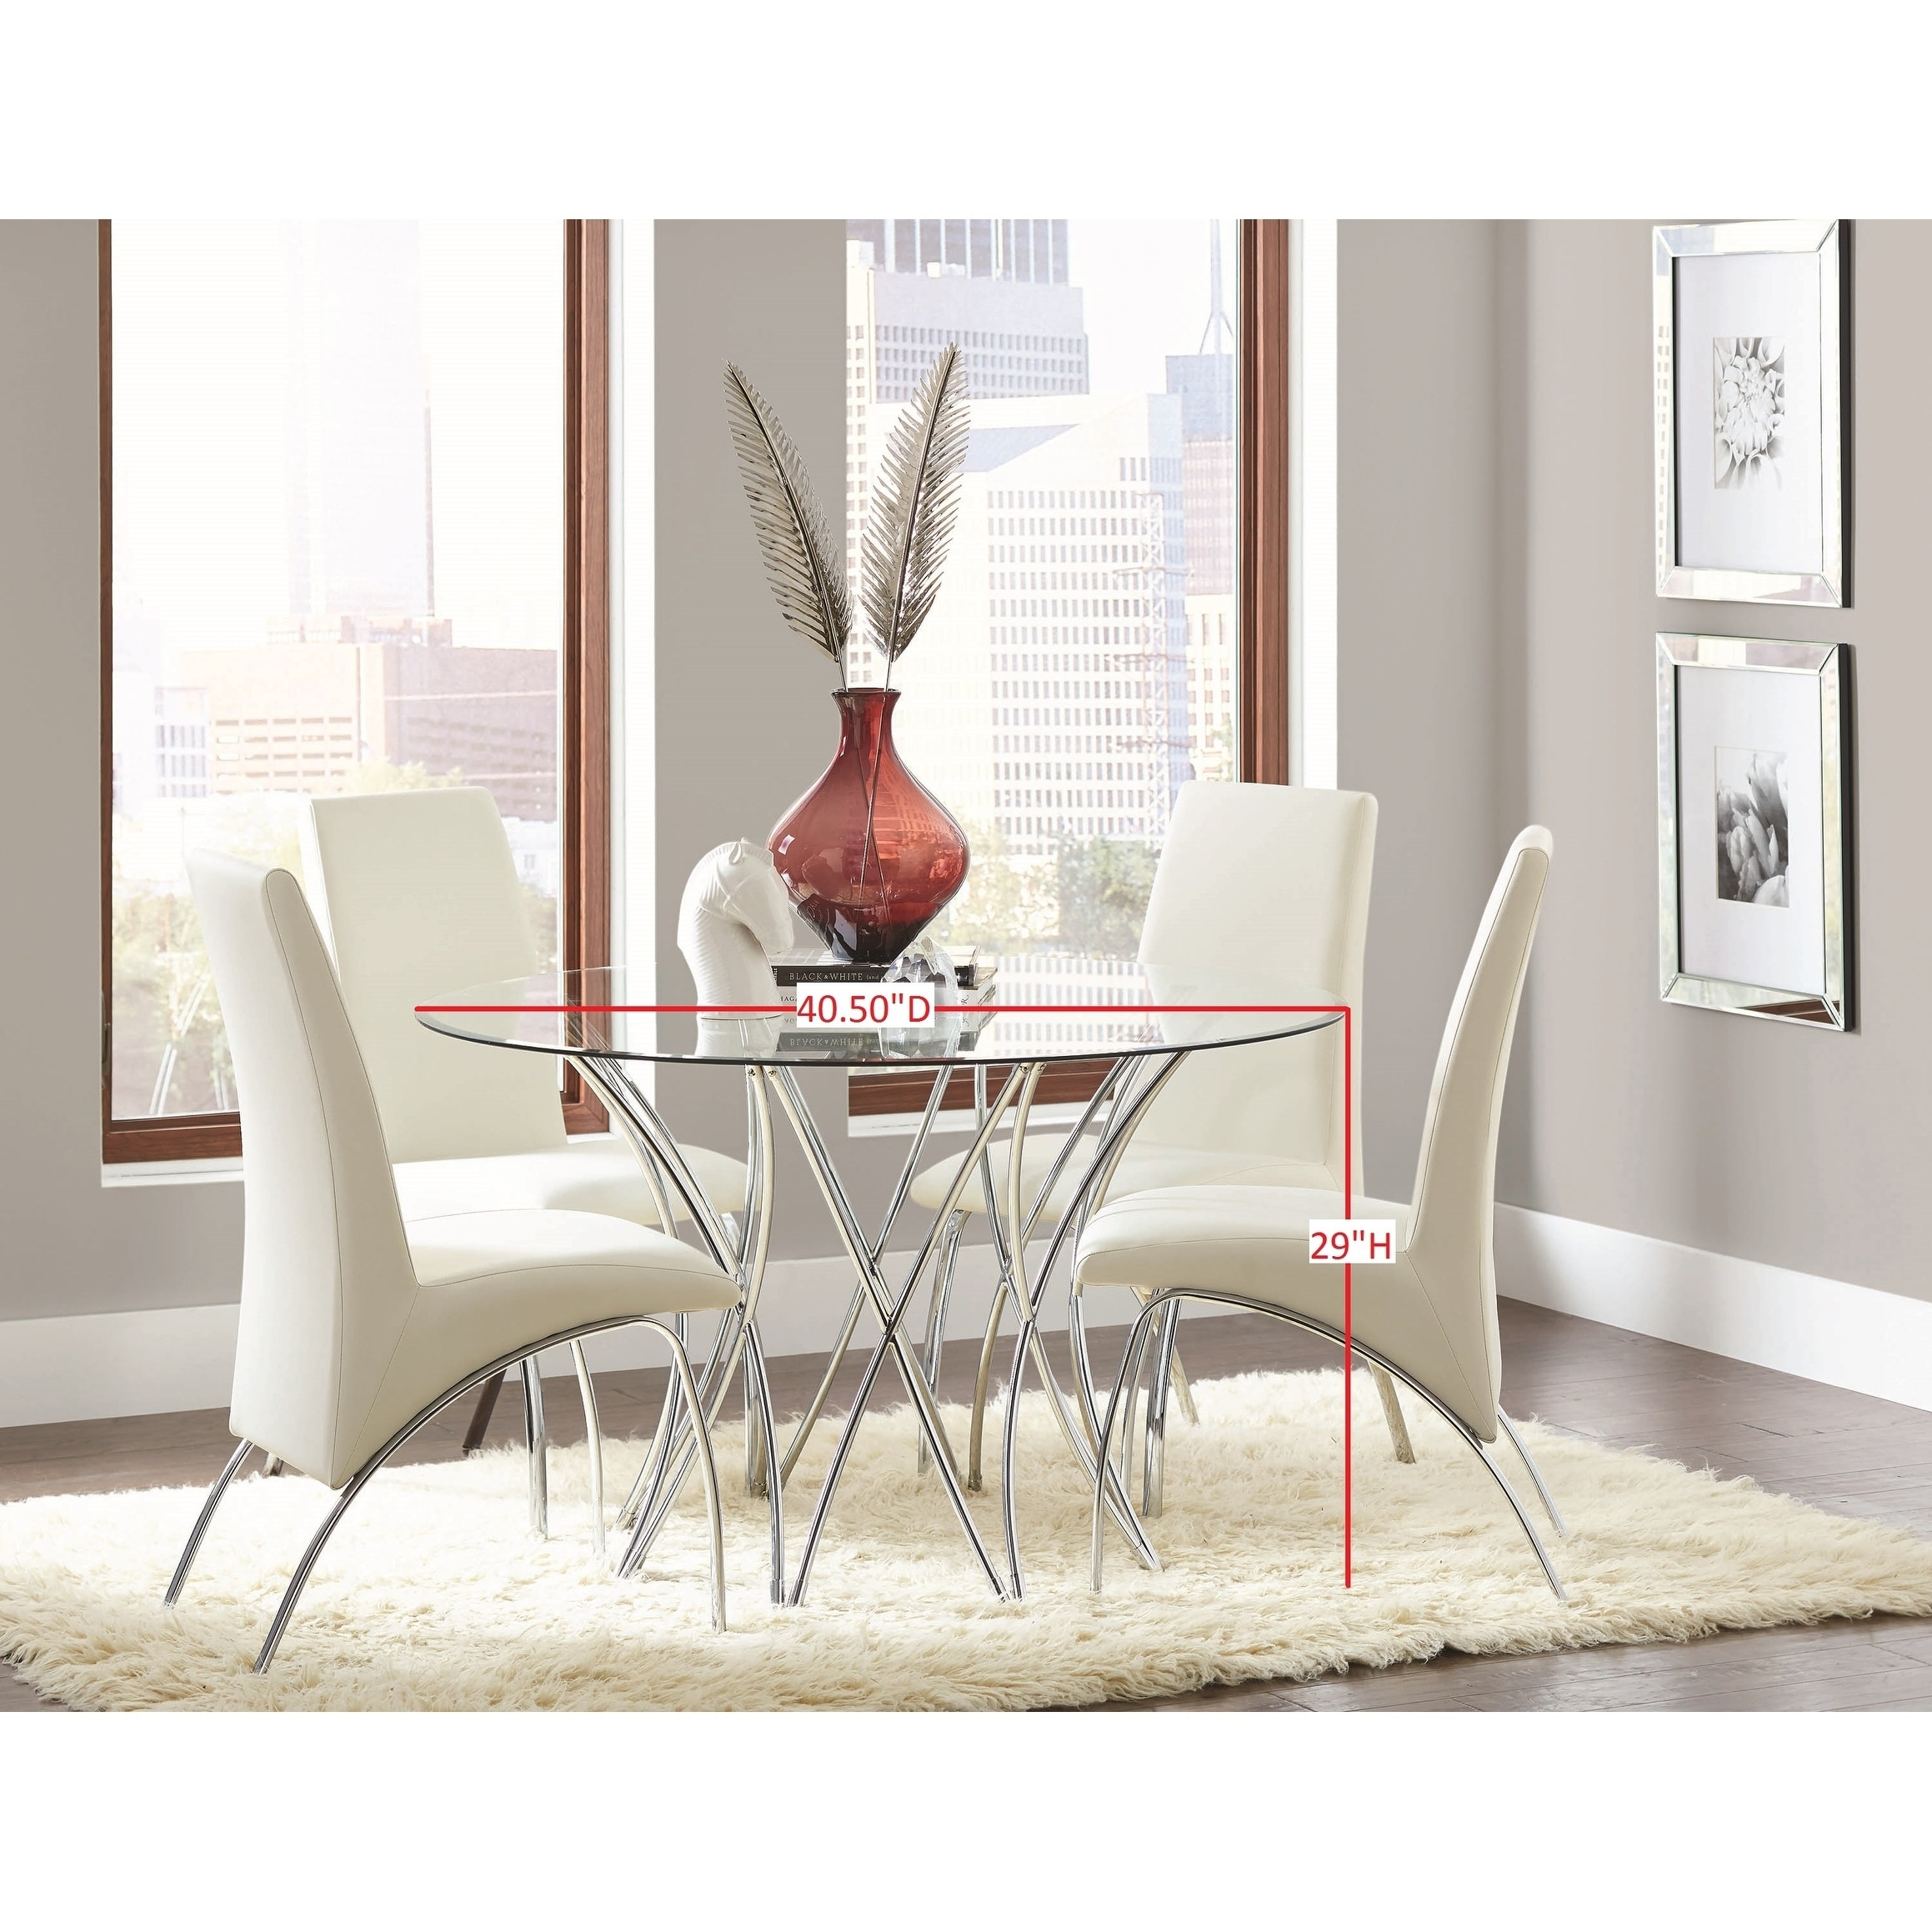 Cabianca Contemporary Chrome Table Base Base Only 29 X 40 50 Overstock 22579199